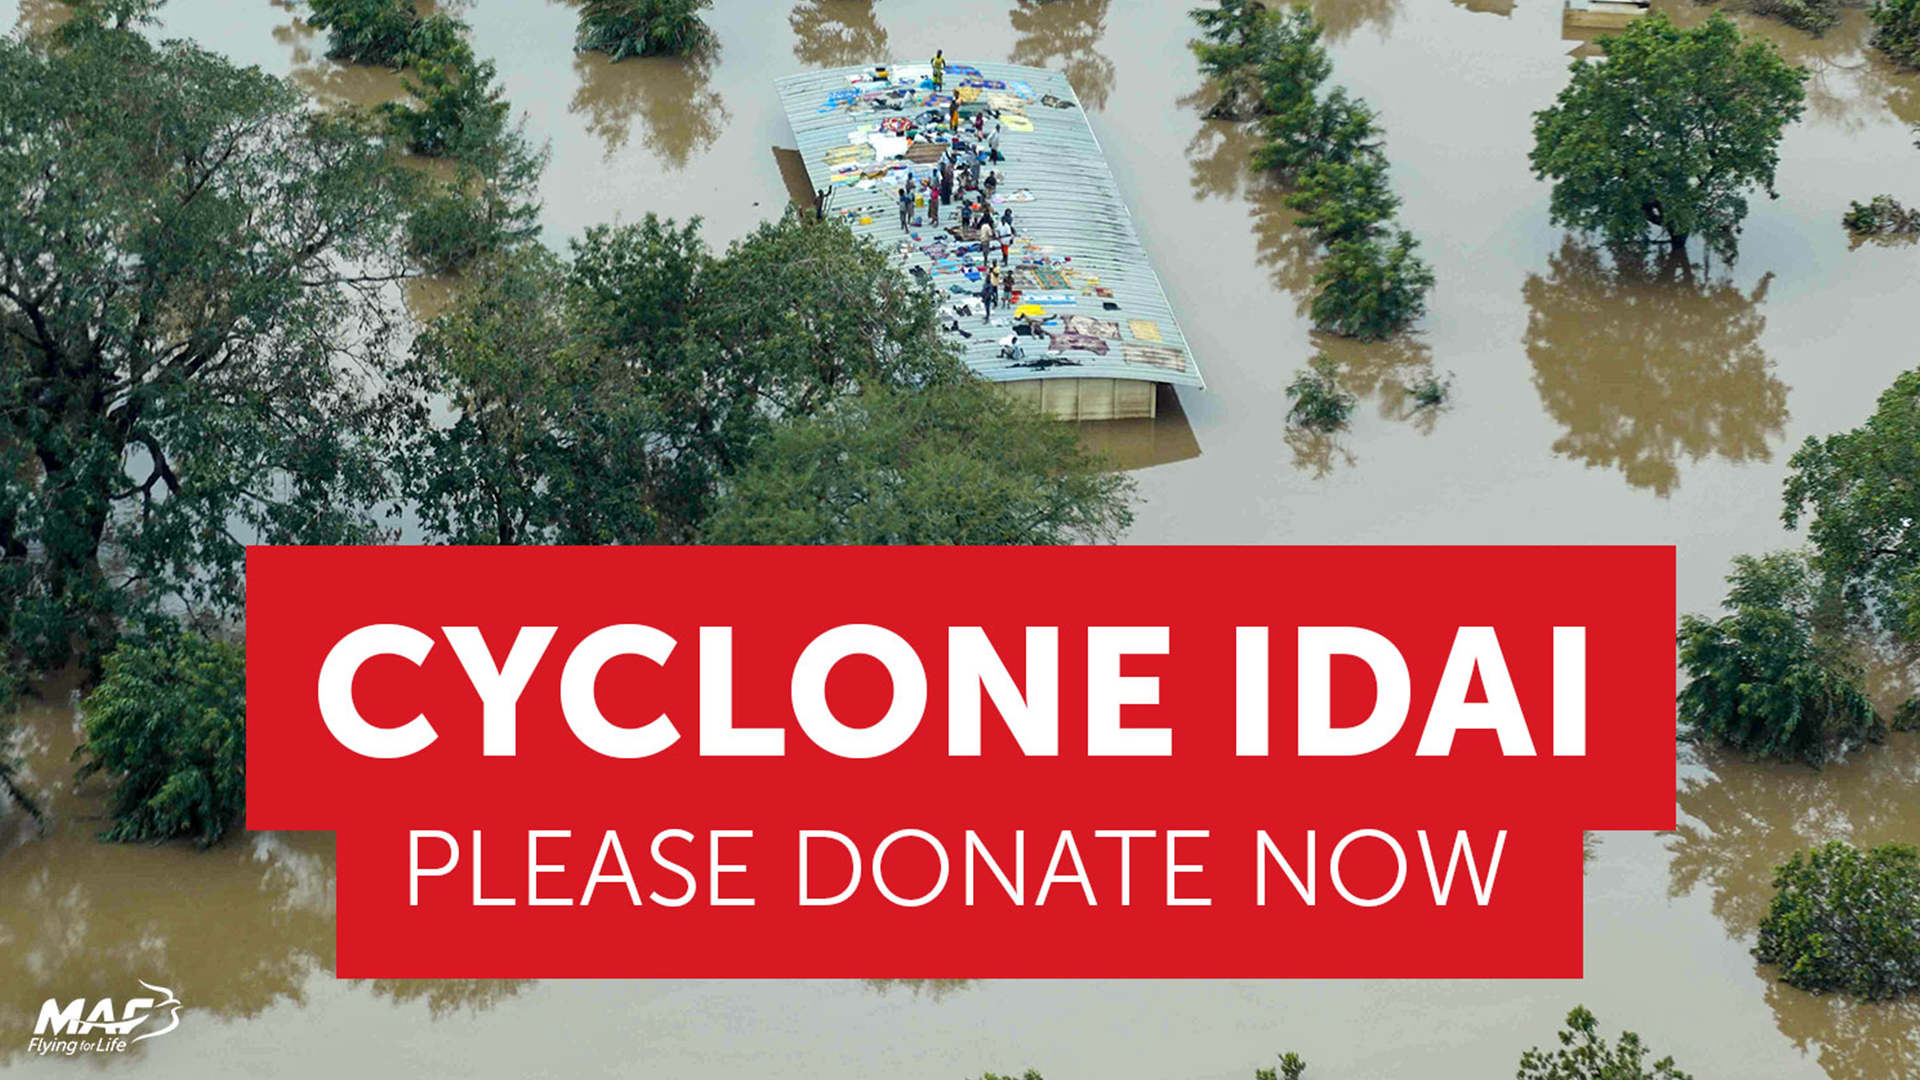 Cyclone Idai Disaster Response: Please donate now